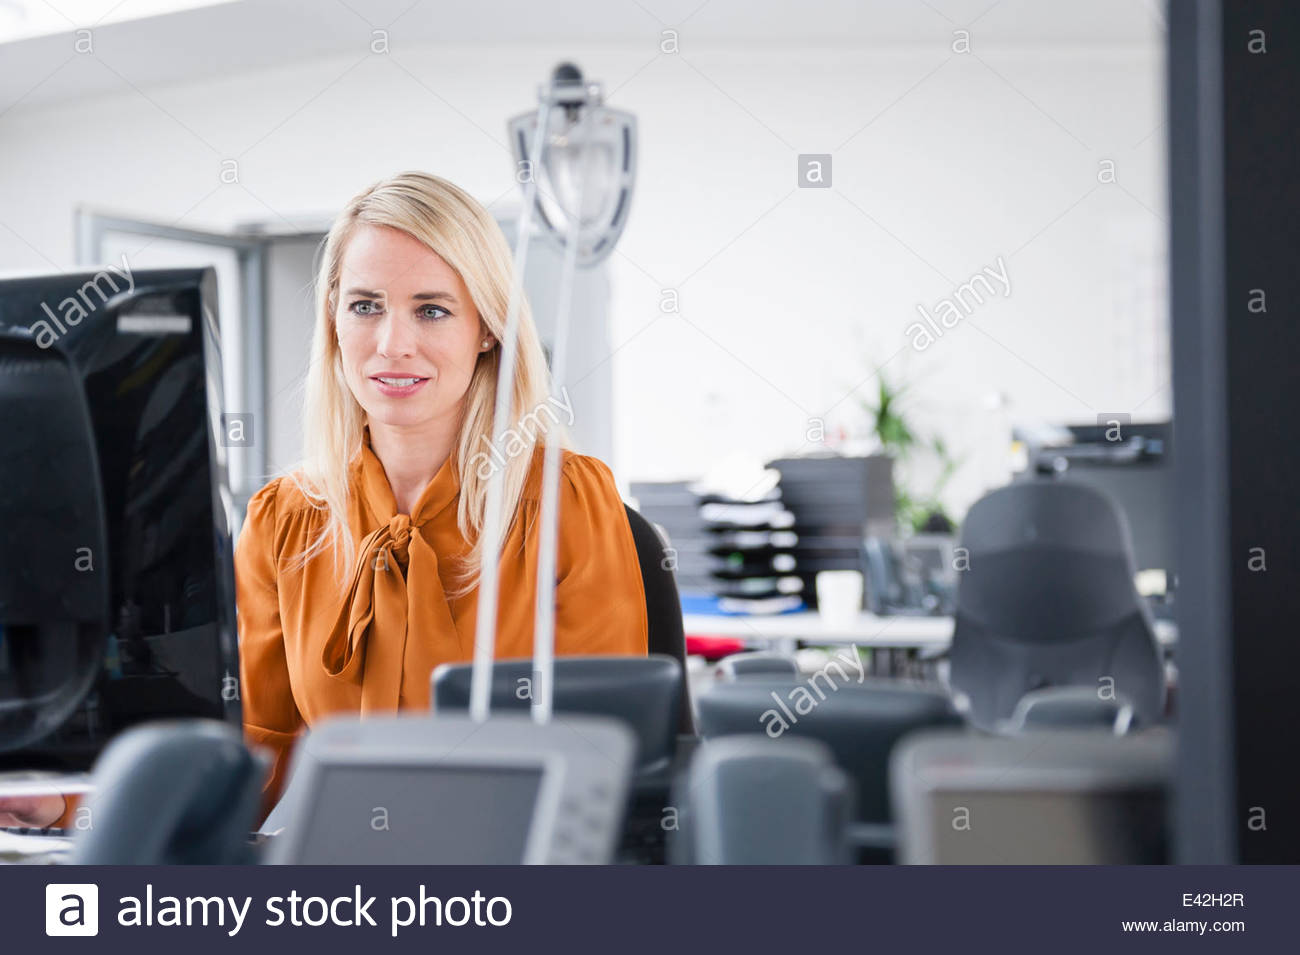 Office worker at desk - Stock Image